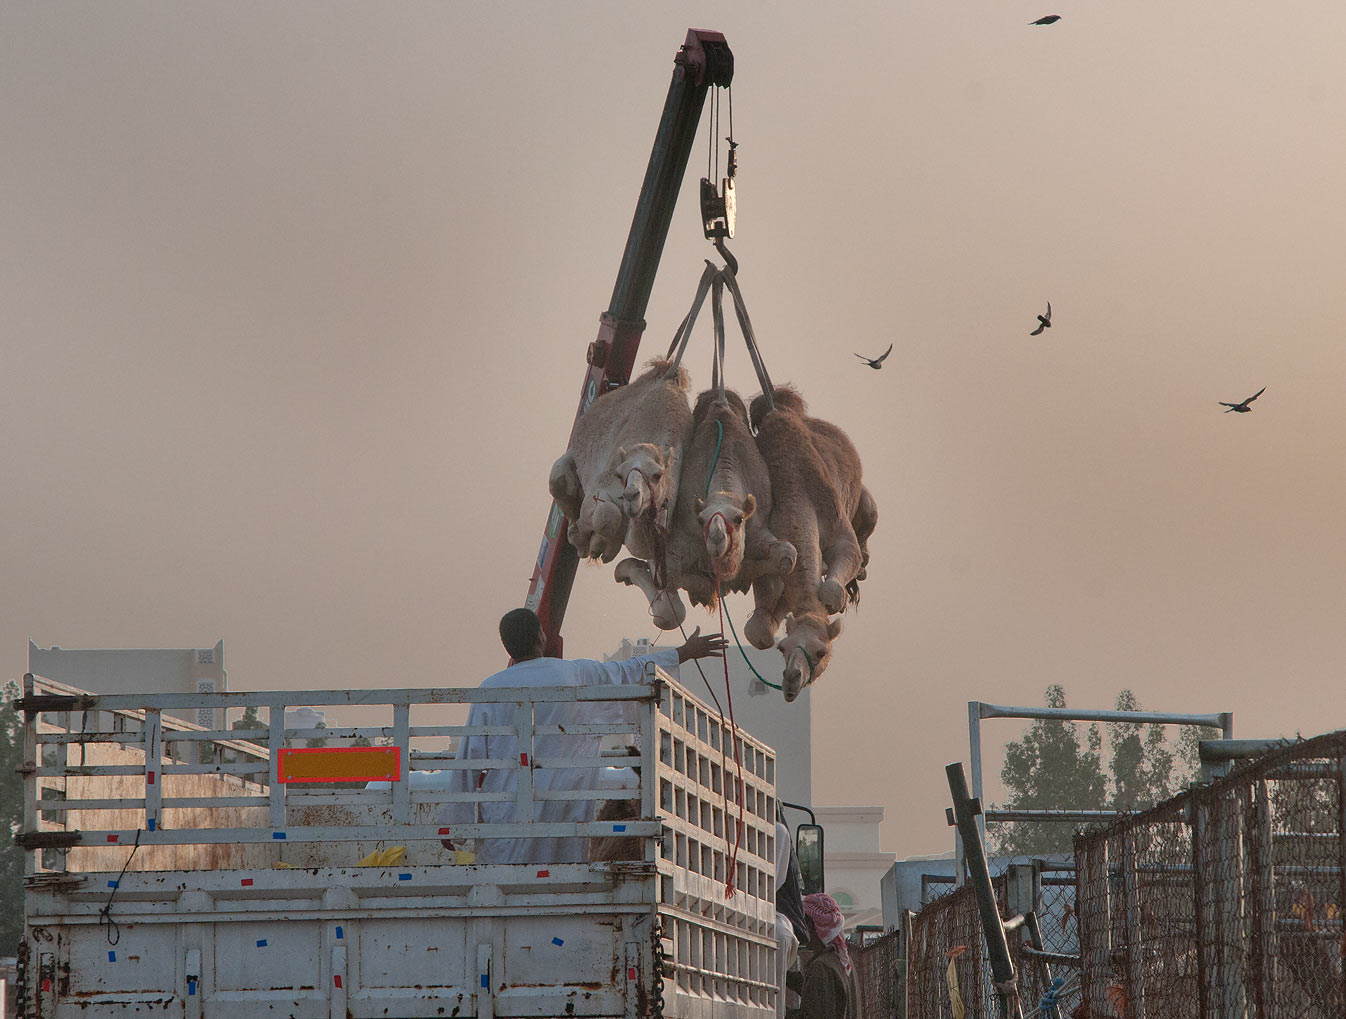 Three camels plucked in air by a crane in Animal...Wholesale Markets area. Doha, Qatar